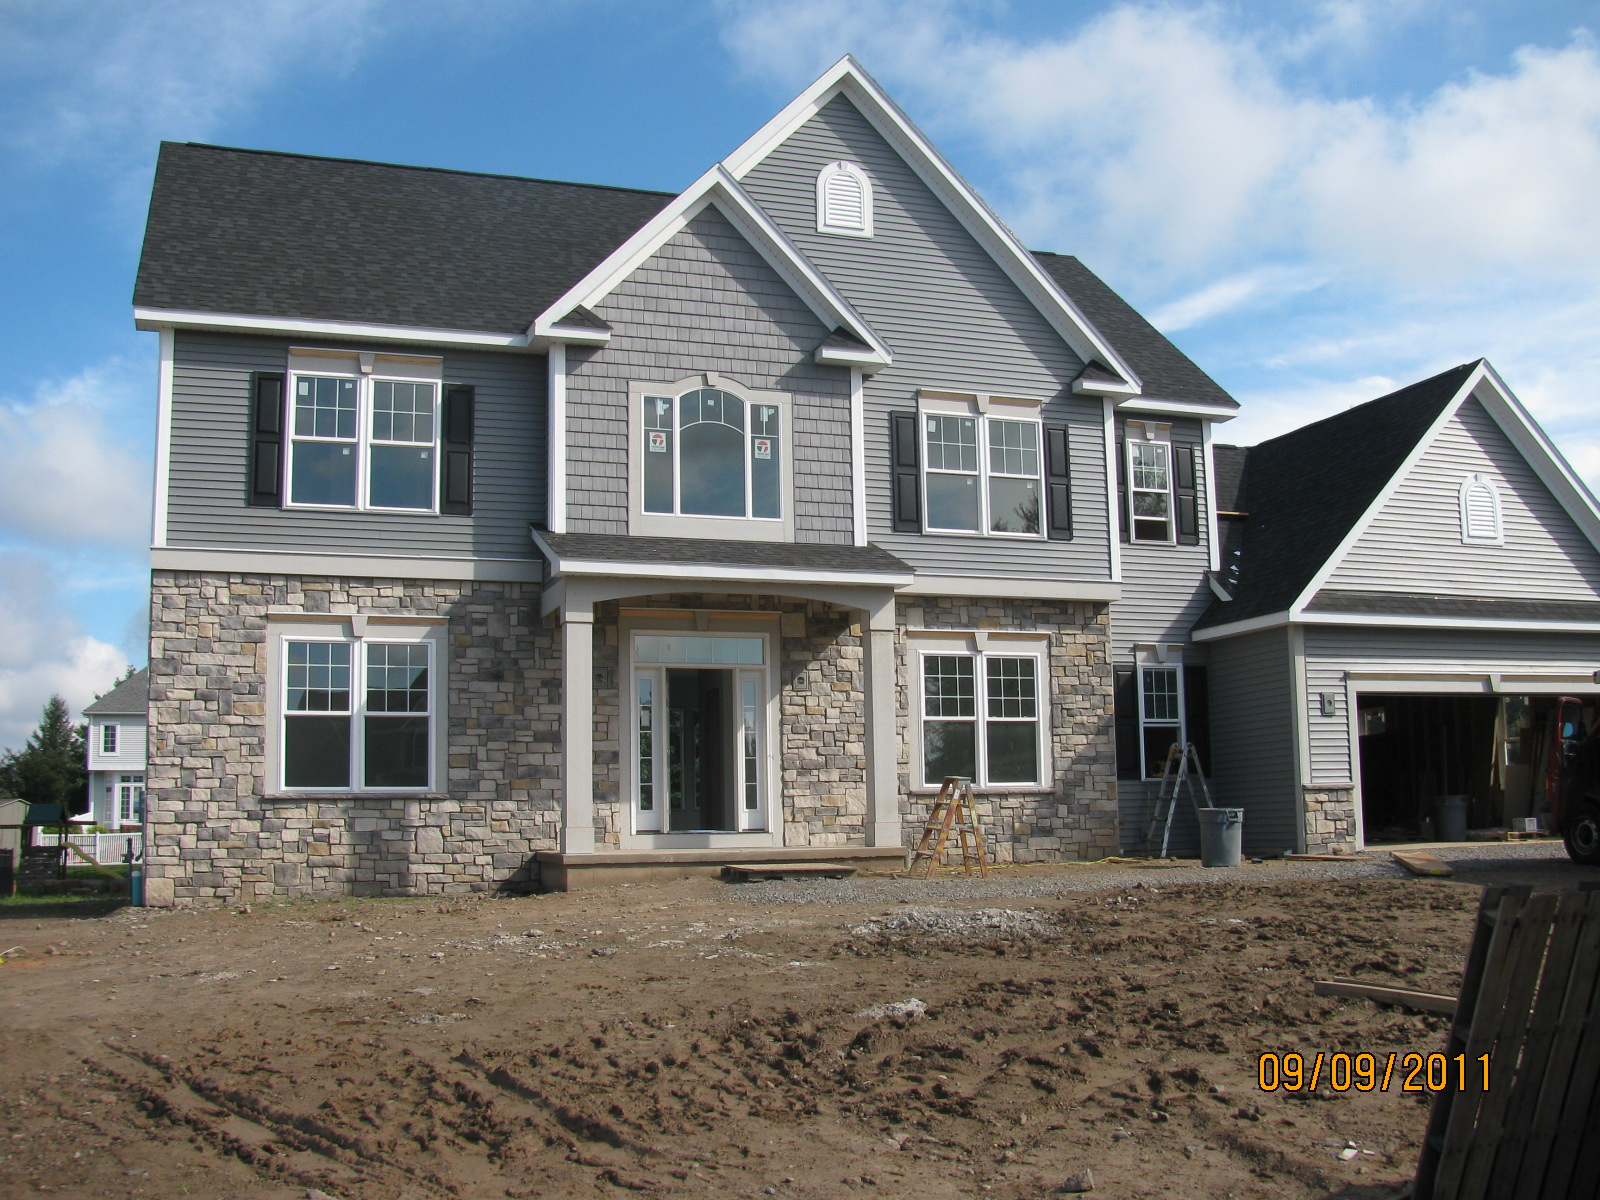 Nit 39 S News Siding Stone And Primed